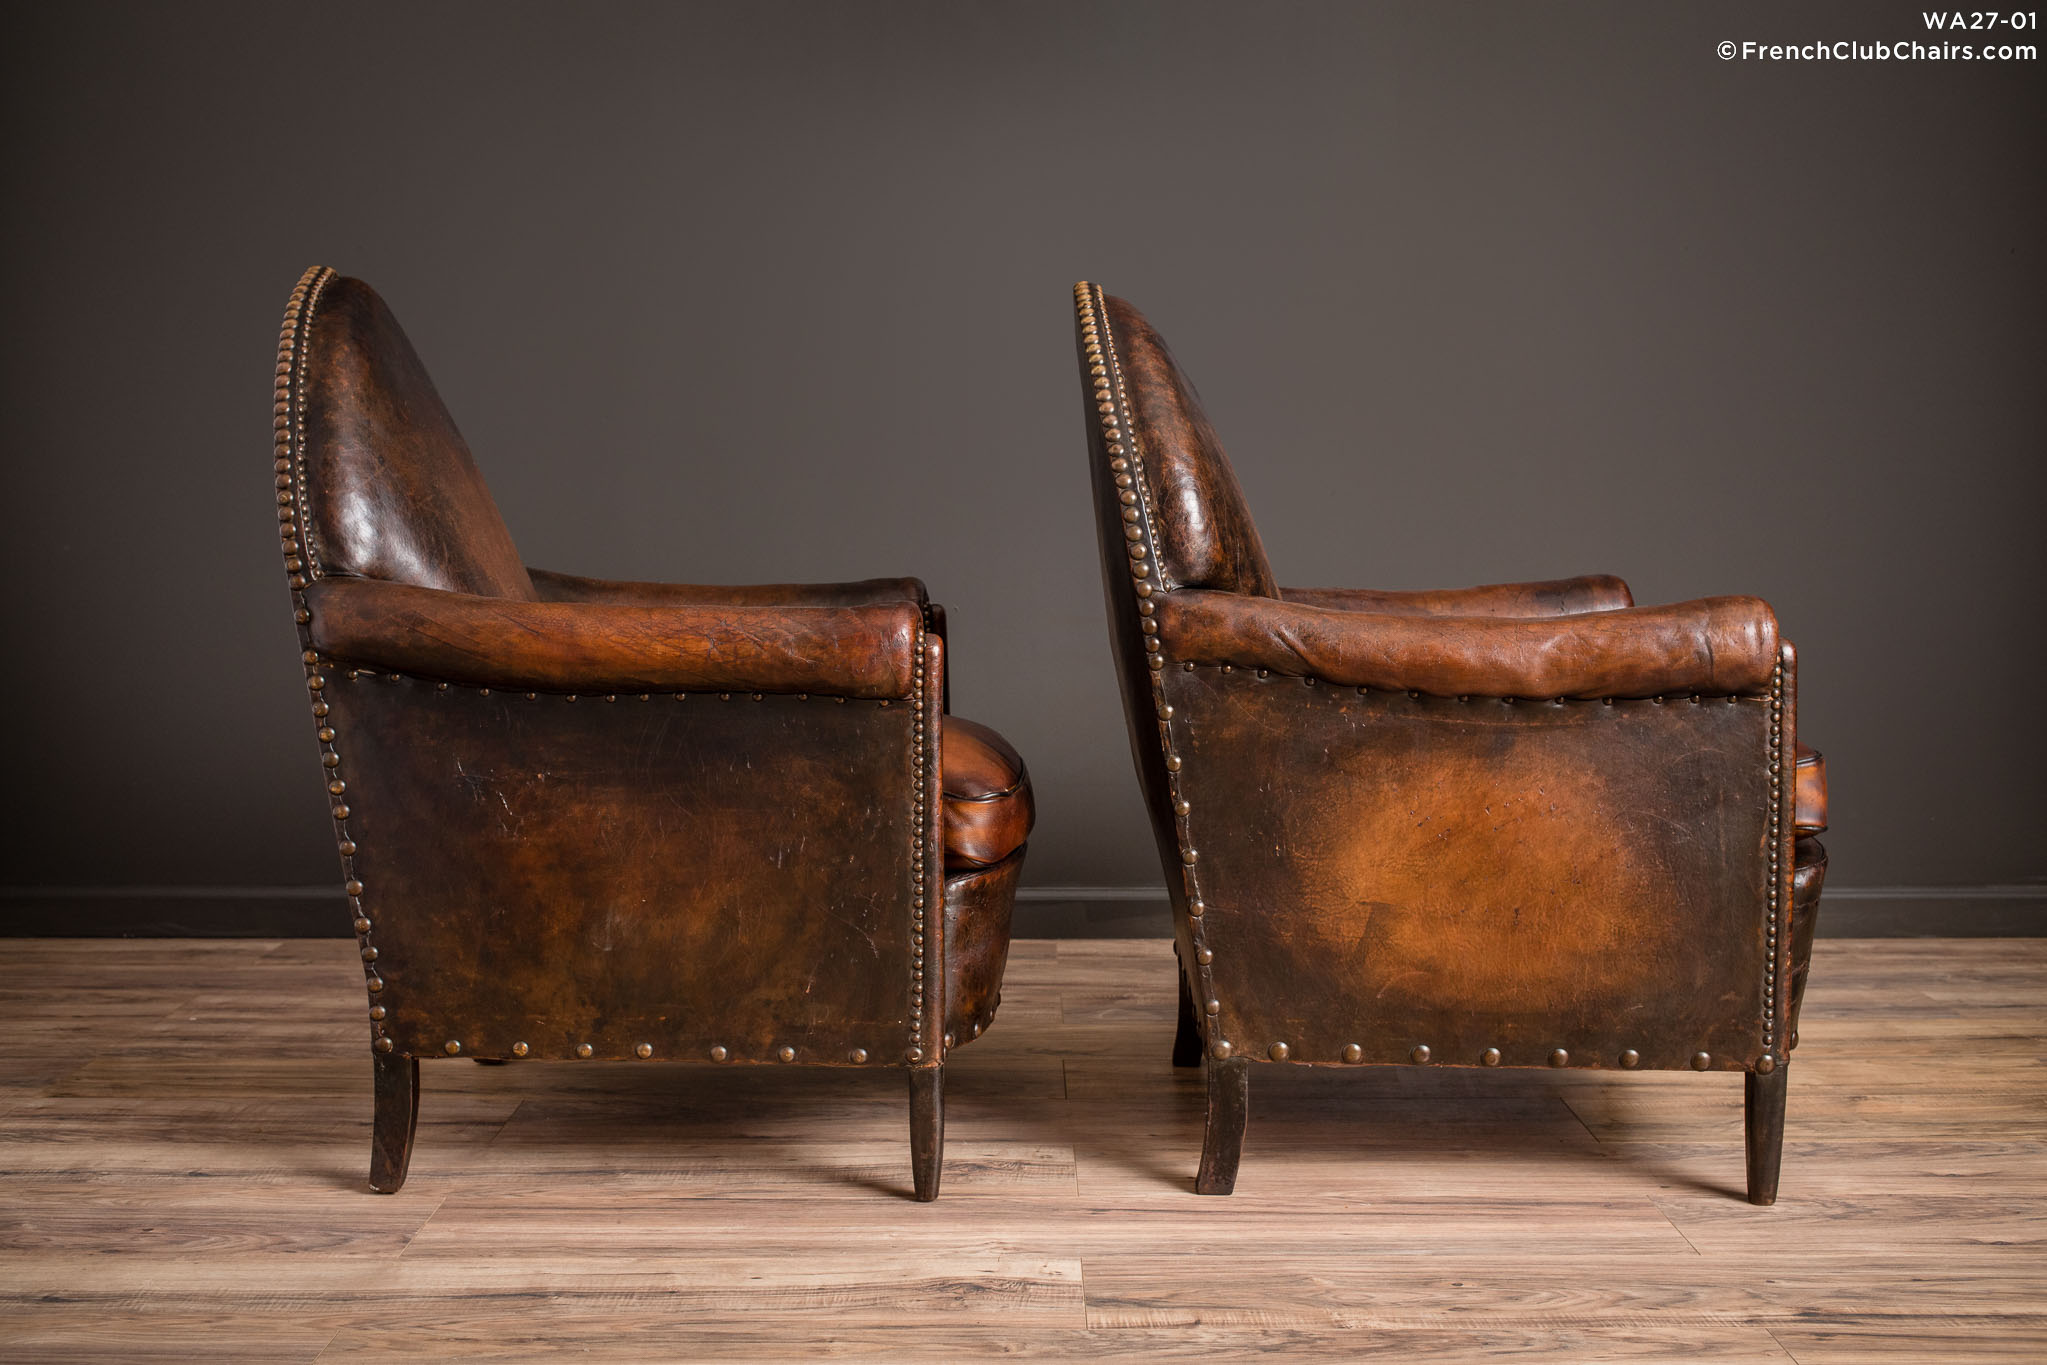 WA_27-01_Steeple_Back_Nailed_Pair_R_3RT-v01-williams-antiks-leather-french-club-chair-wa_fcccom